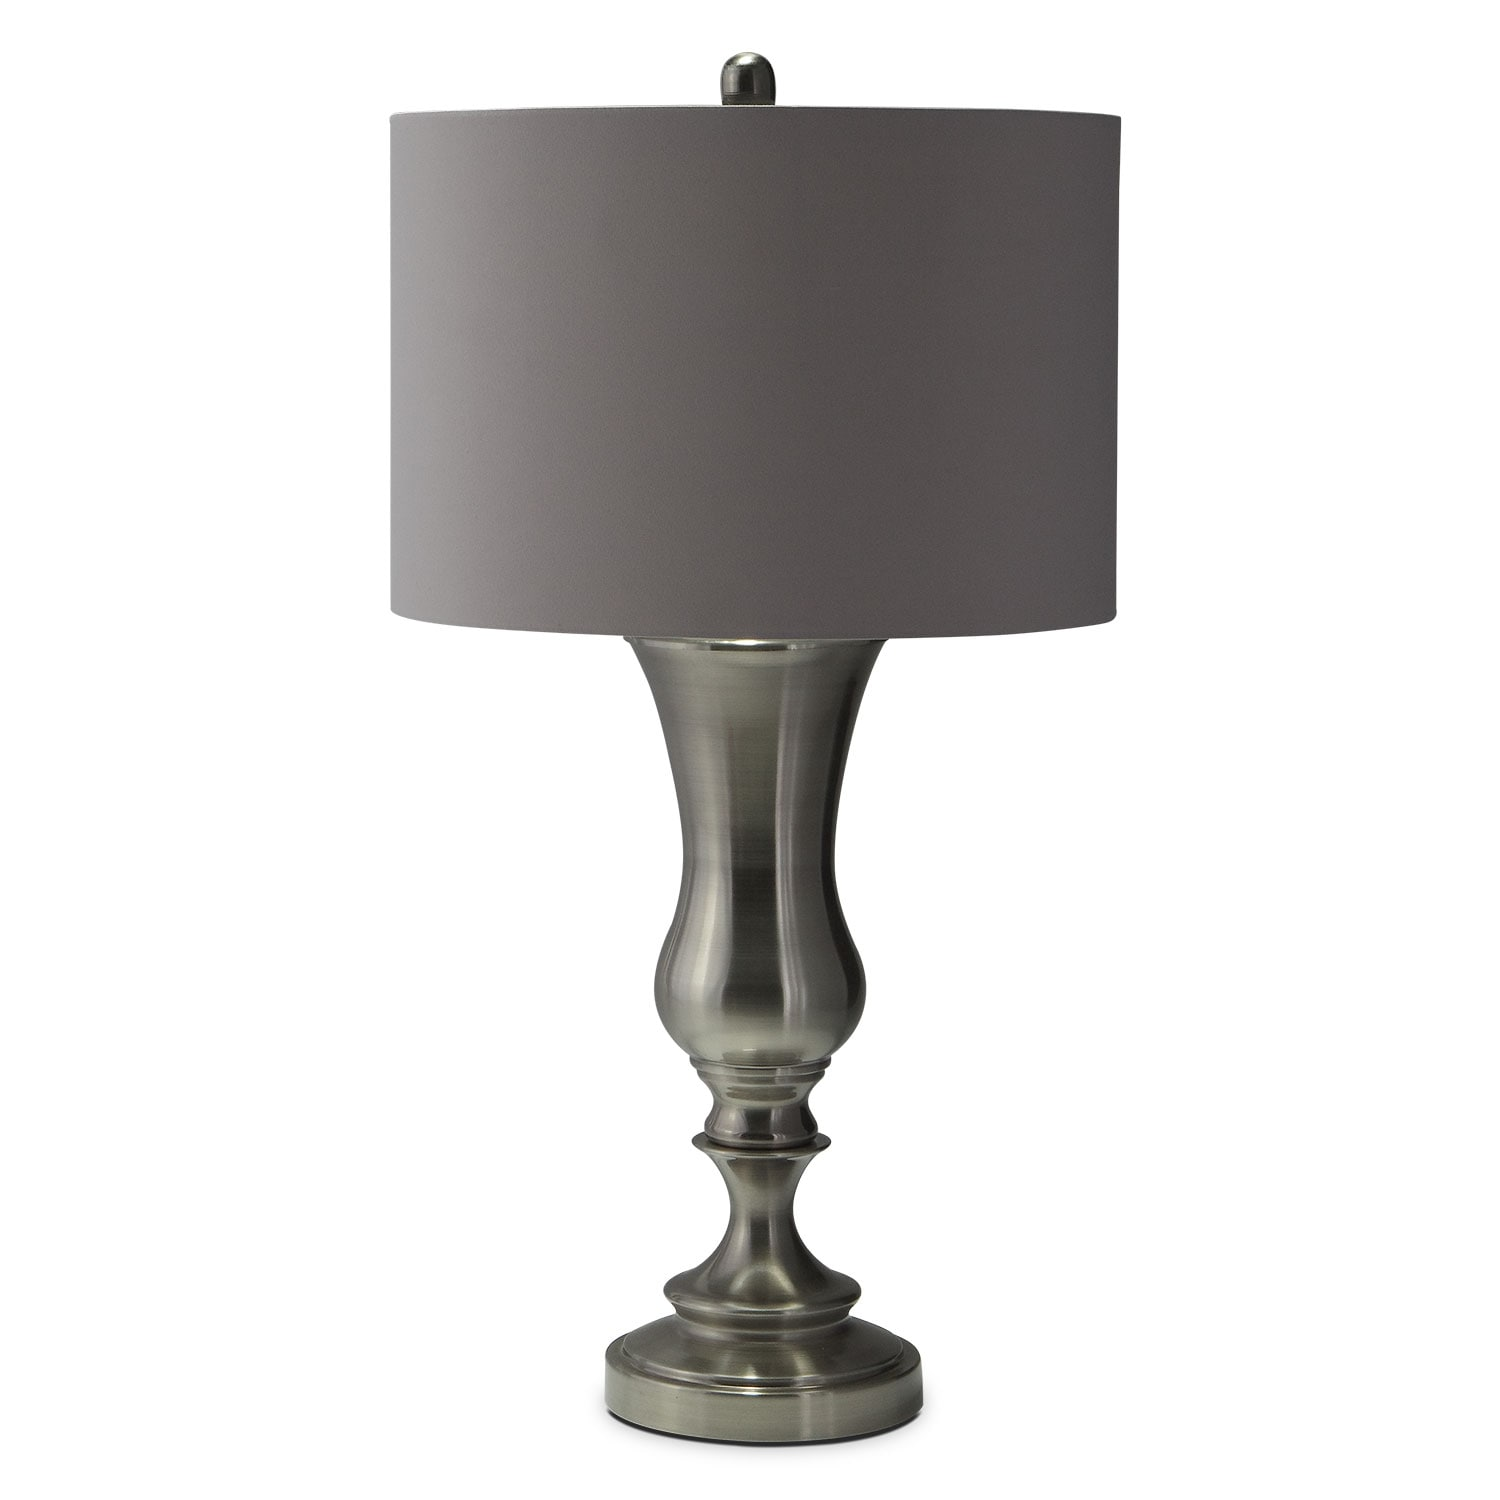 Home Accessories - Brush Coal Urn Table Lamp